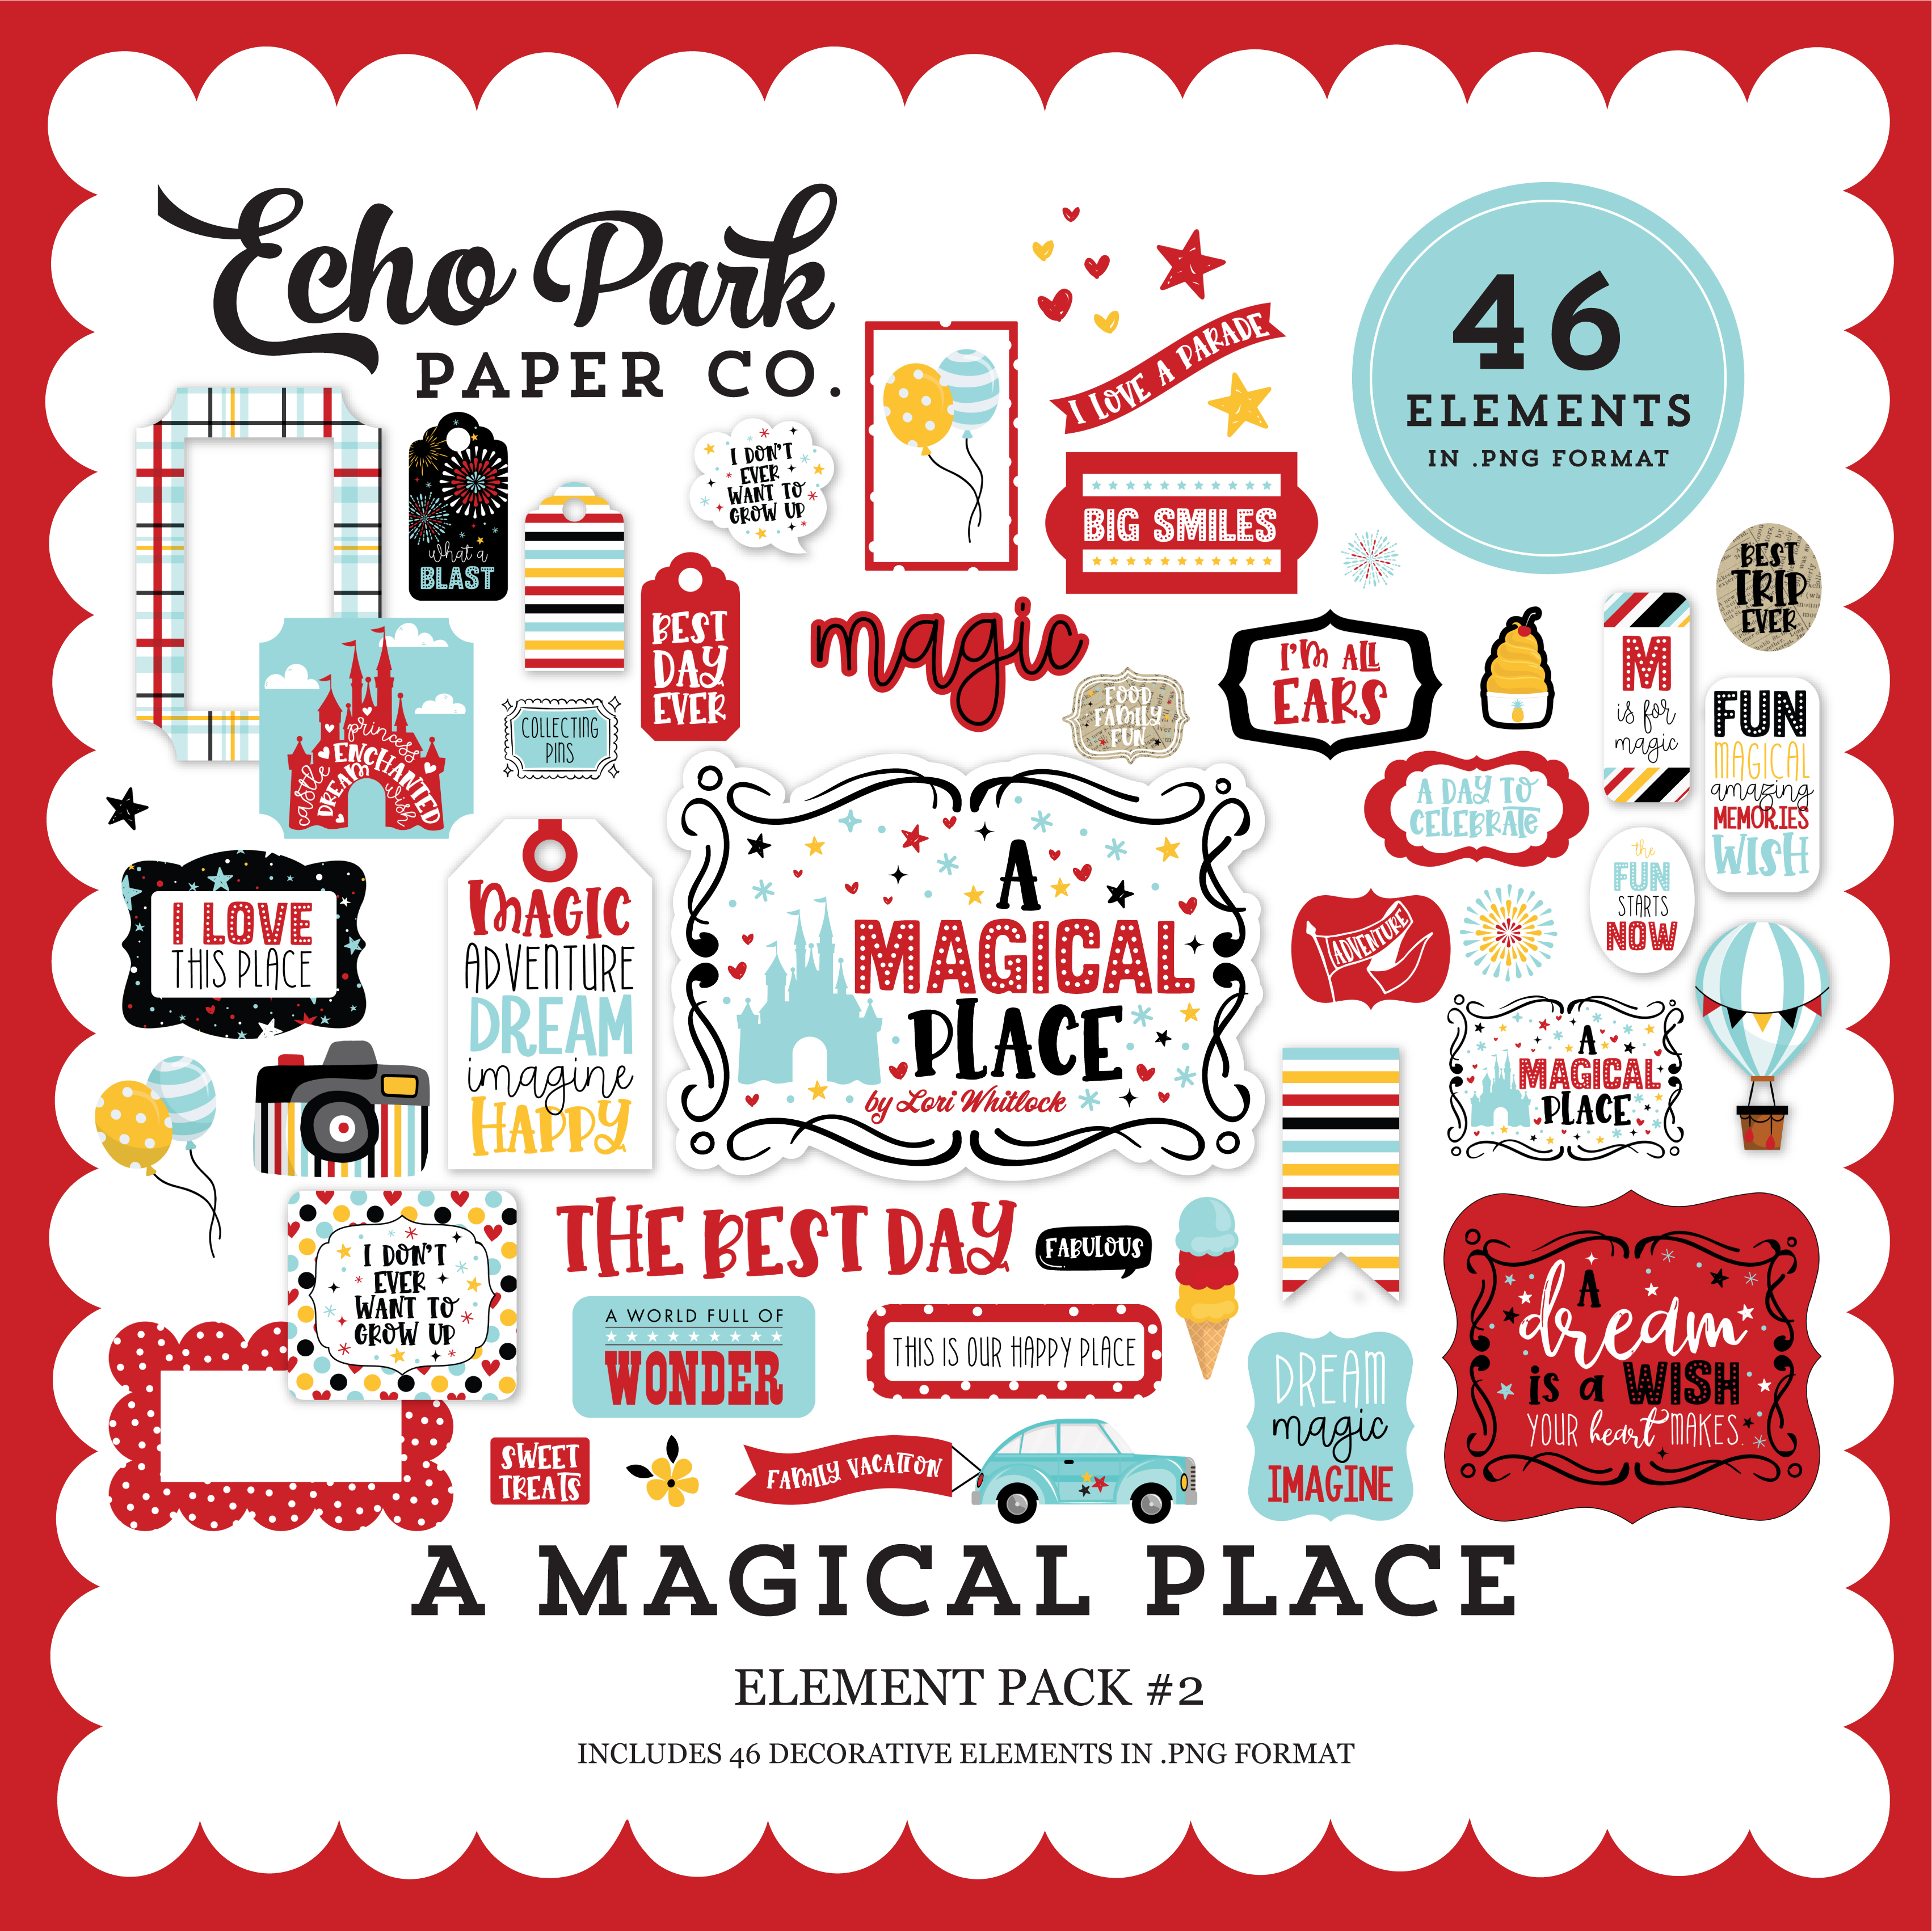 A Magical Place Element Pack #2